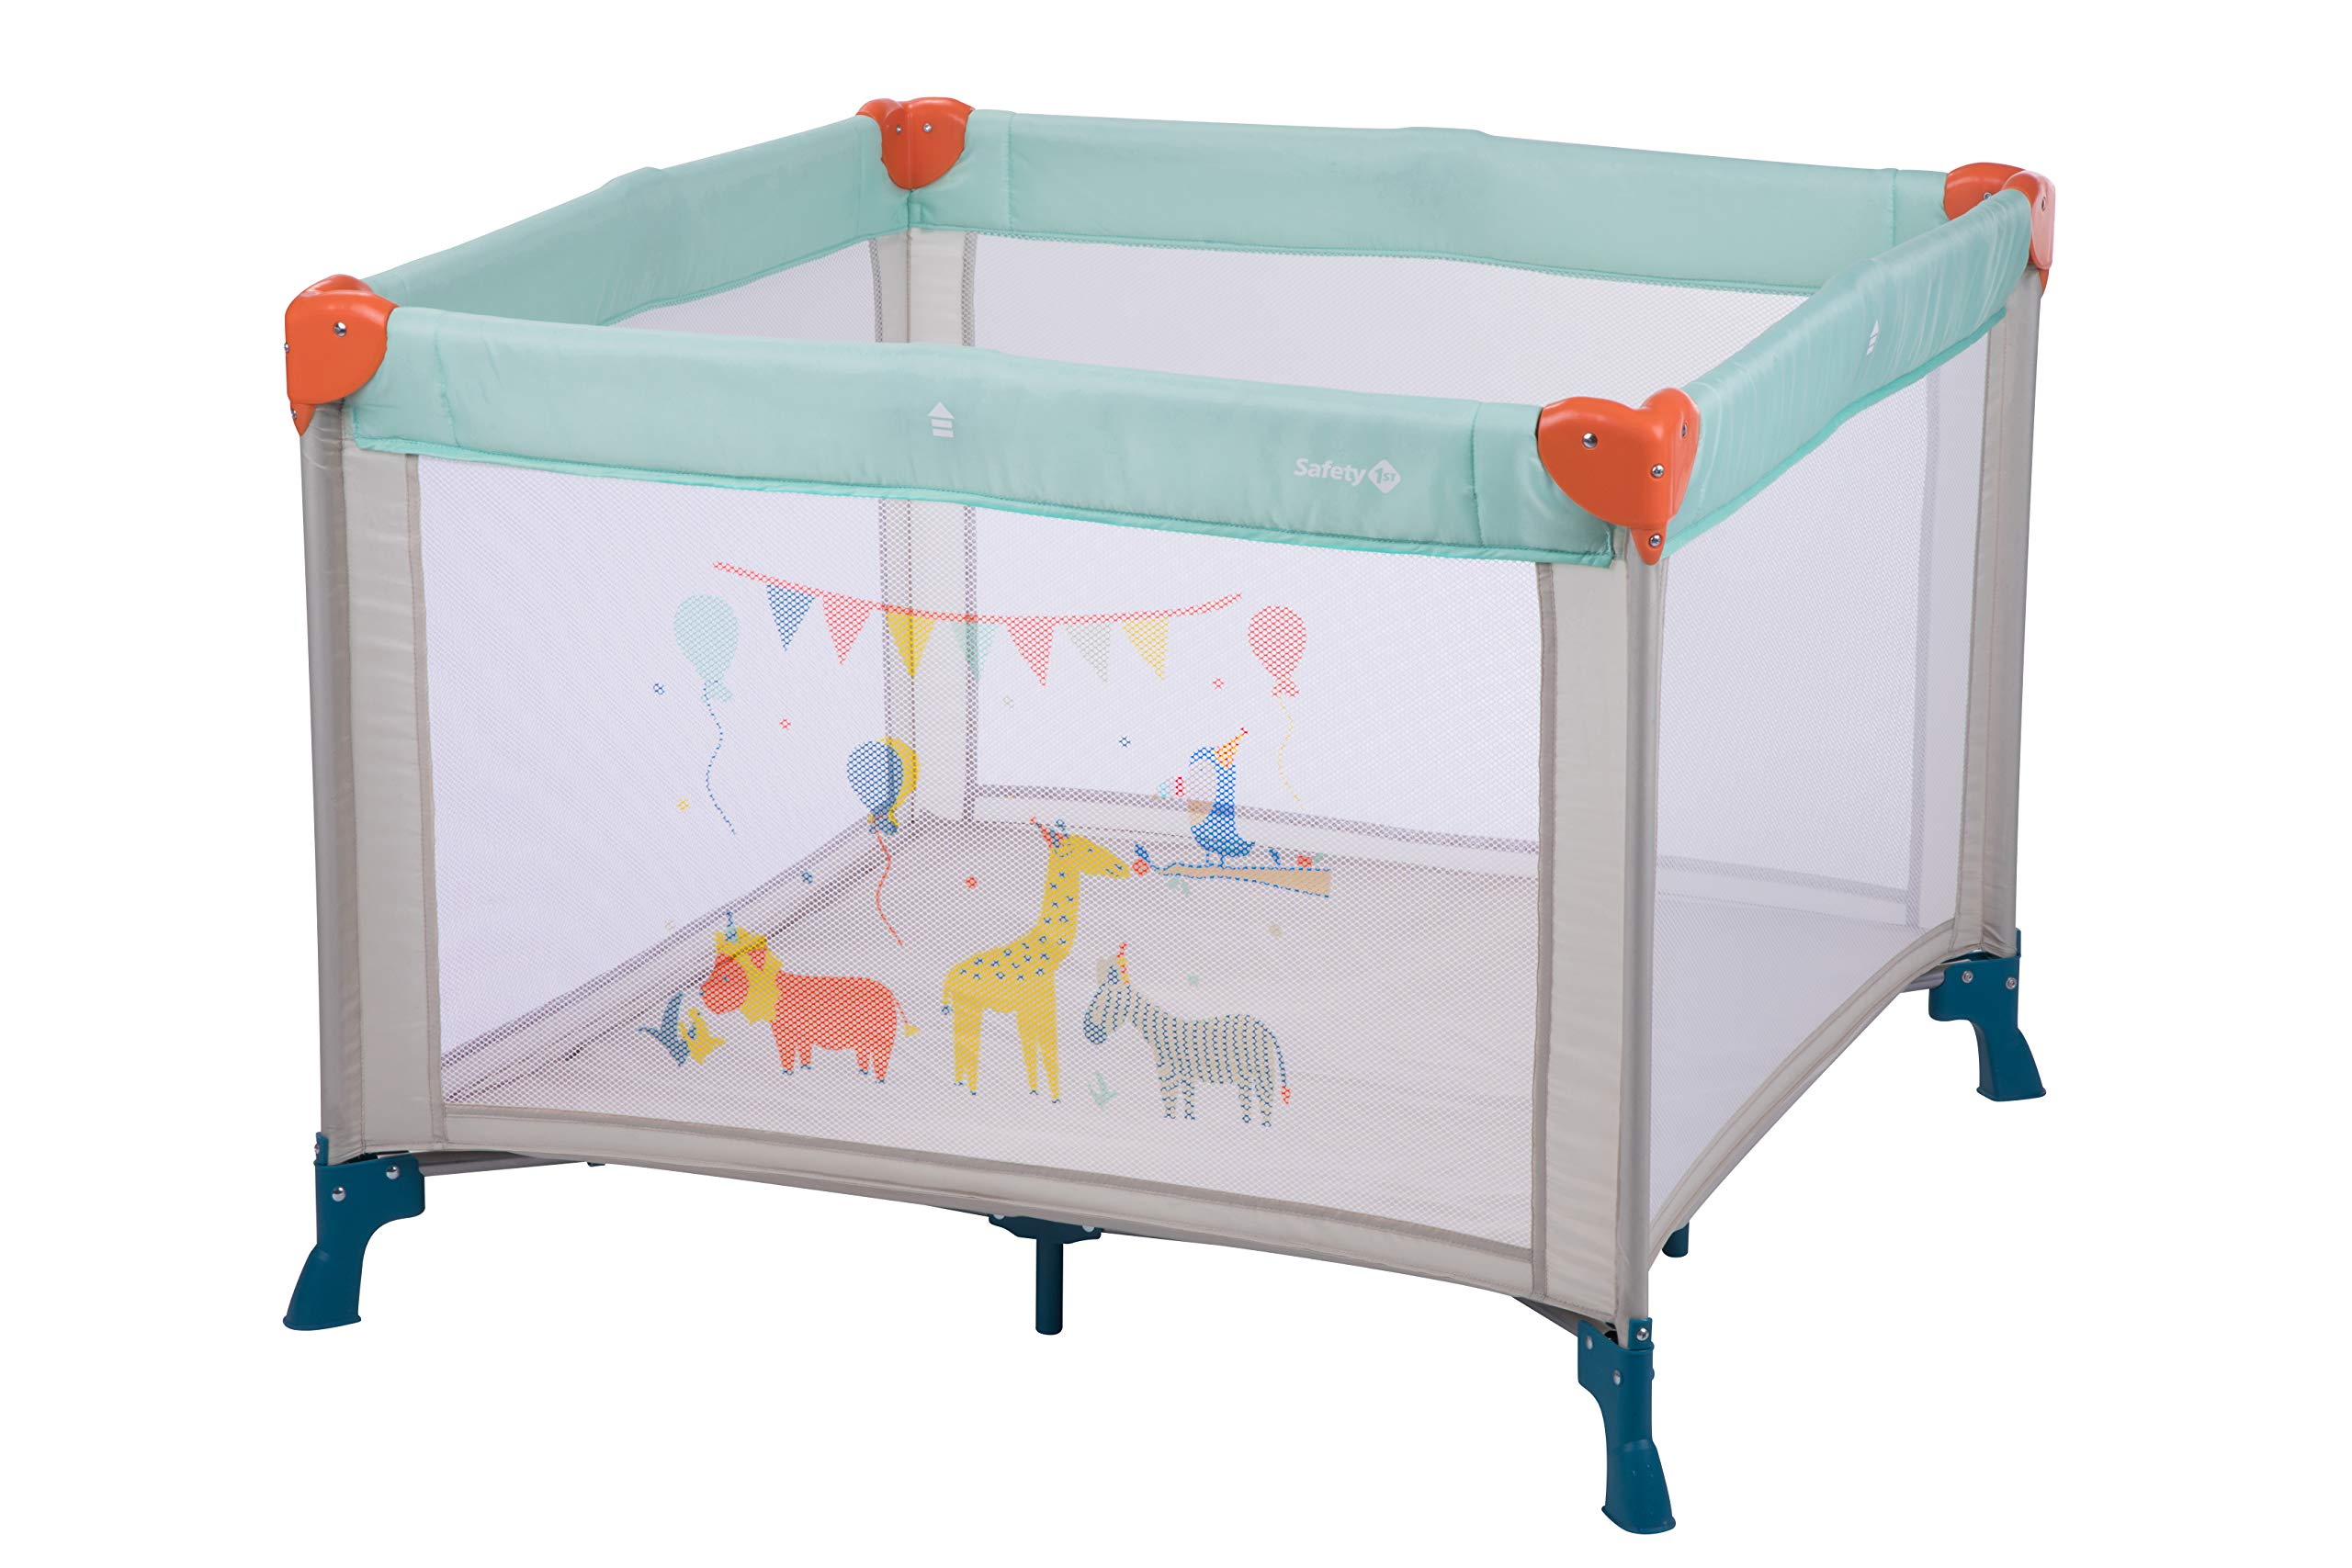 Safety 1st Circus Compact Travel Cot Safety 1st Spacious play area (1 m x 1 m) 2 uses: in playpen or in travel bed 4 large windows nets to see baby 1